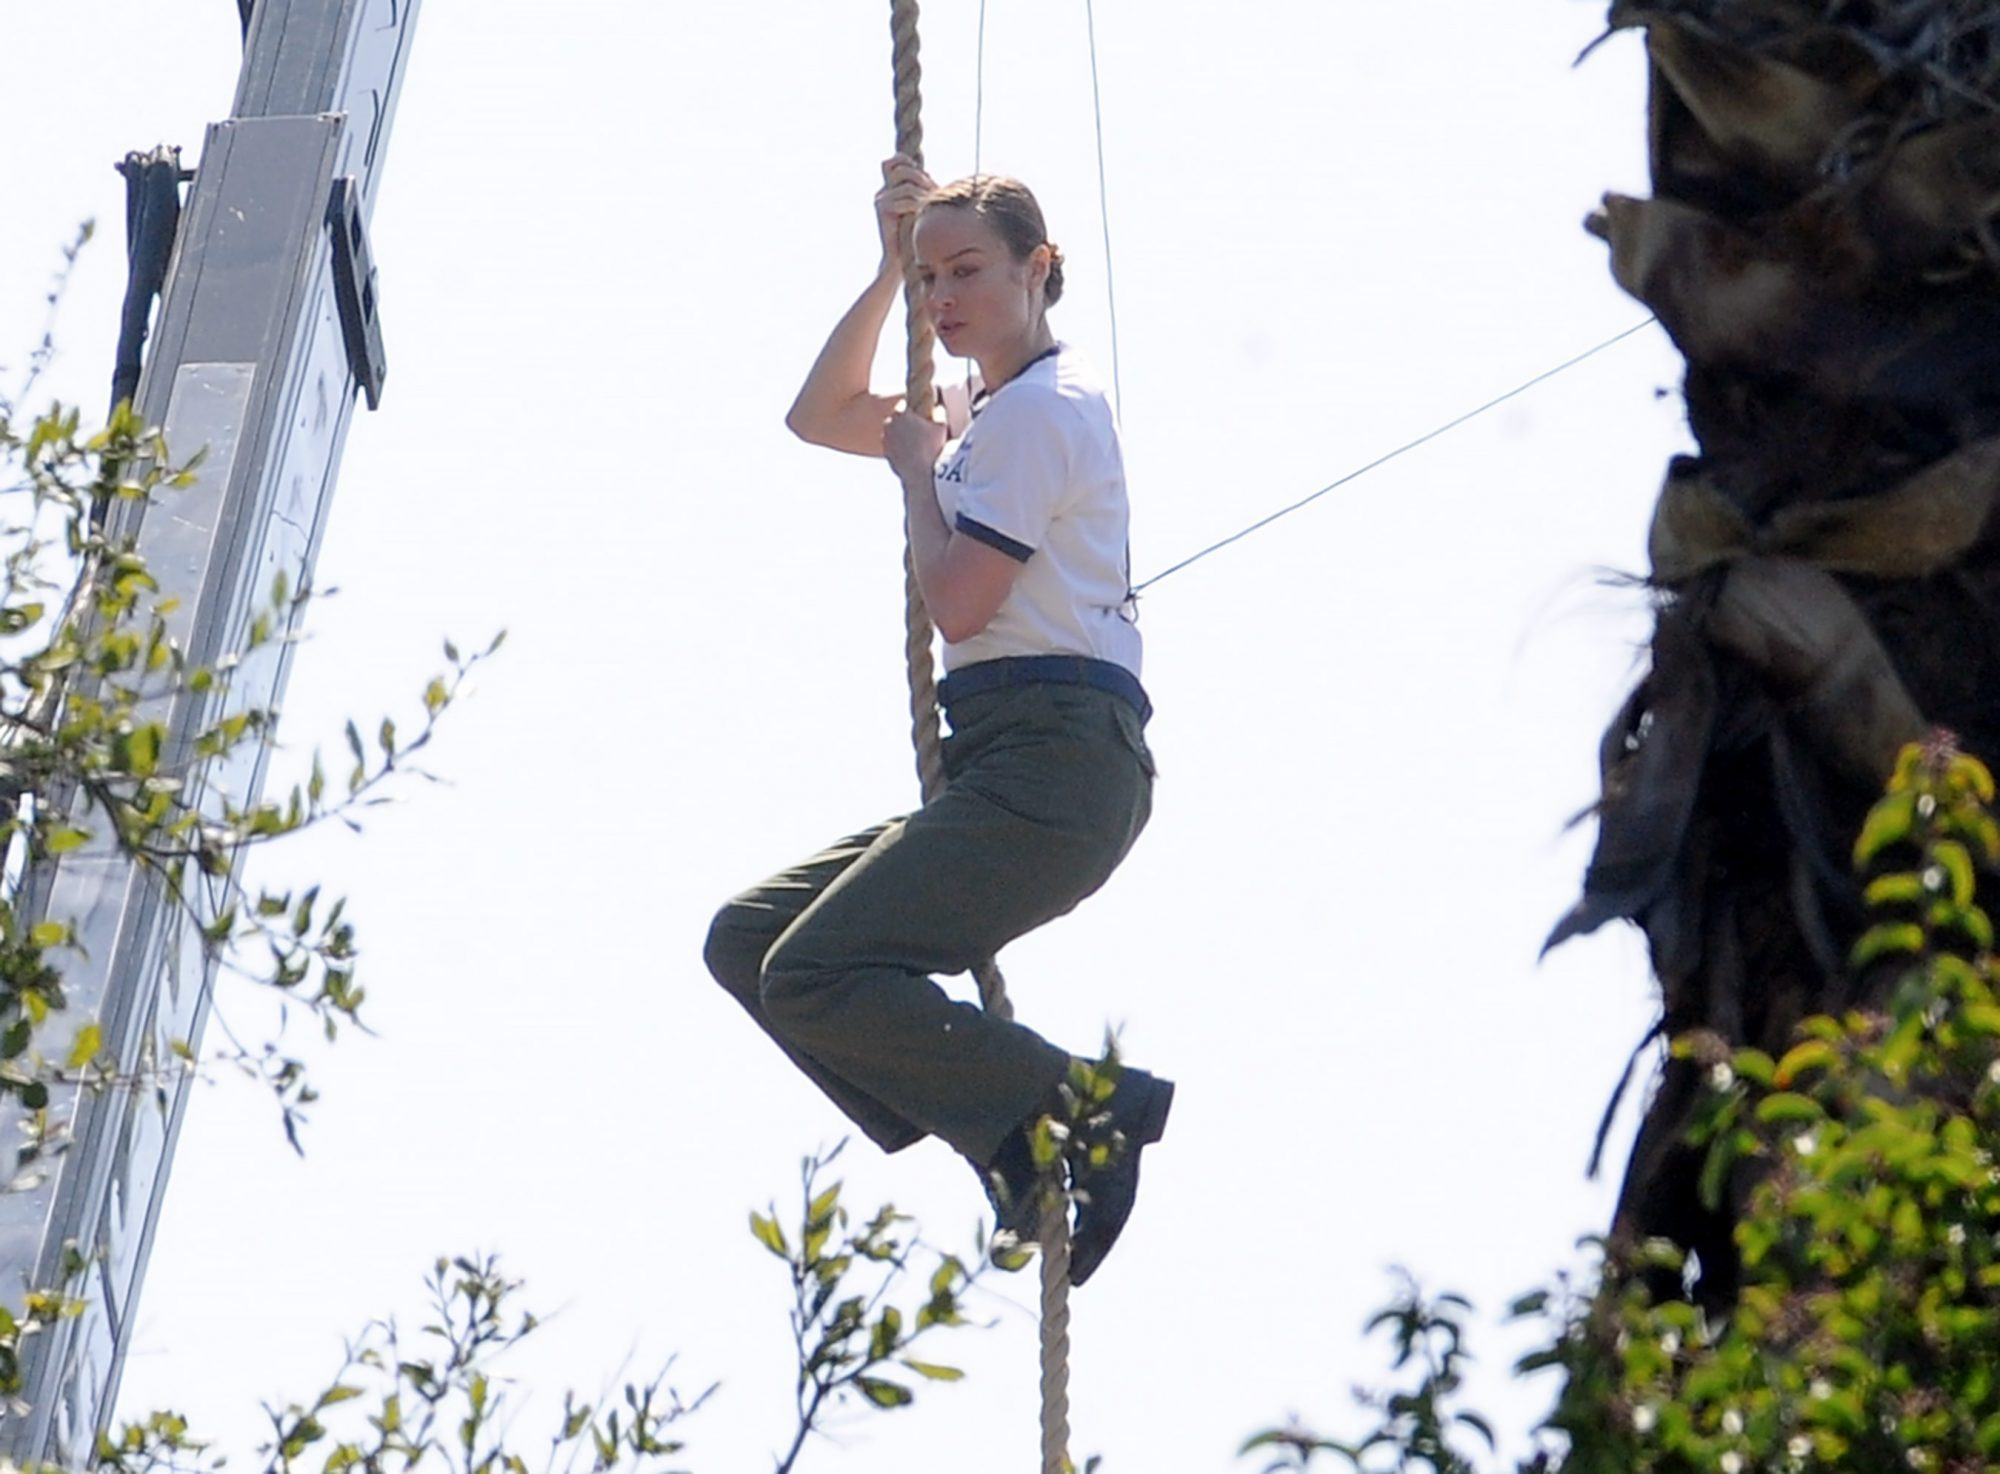 Brie Larson hanging by the ropes